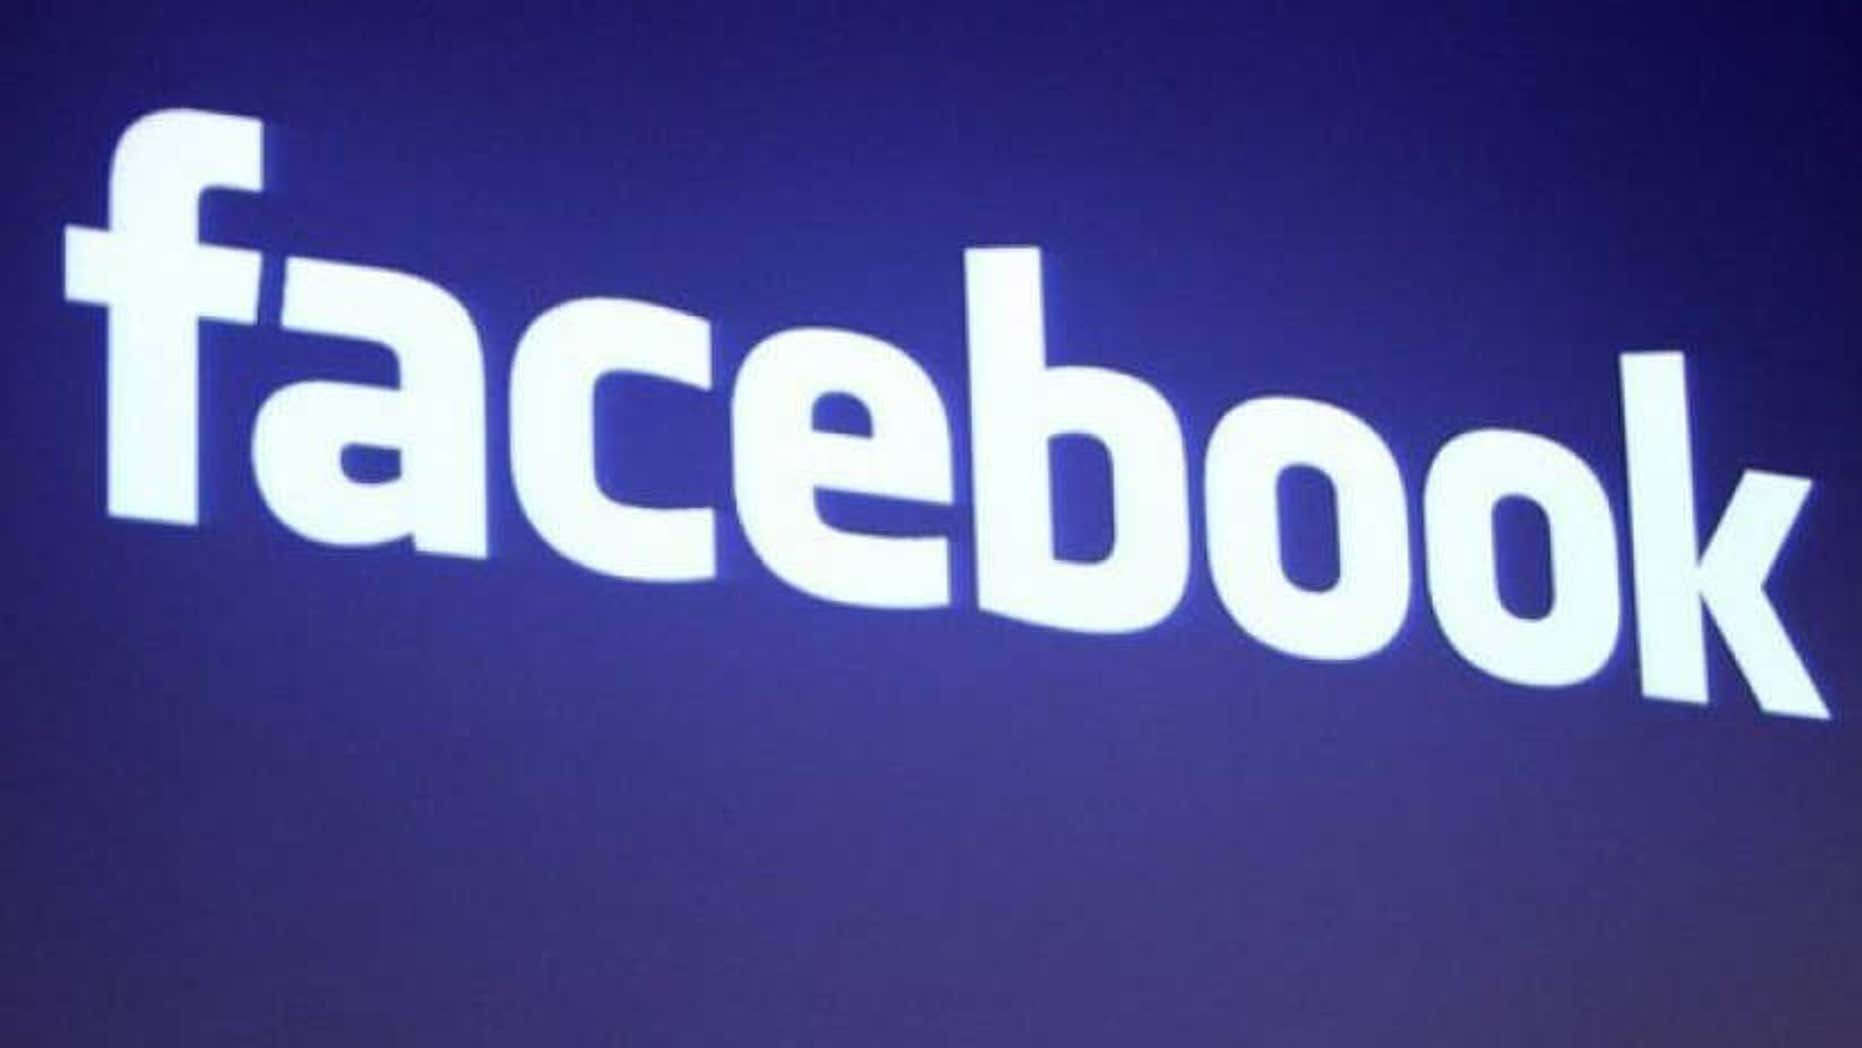 The Facebook logo is shown at Facebook headquarters in Palo Alto, California, in this May 26, 2010 file photo.